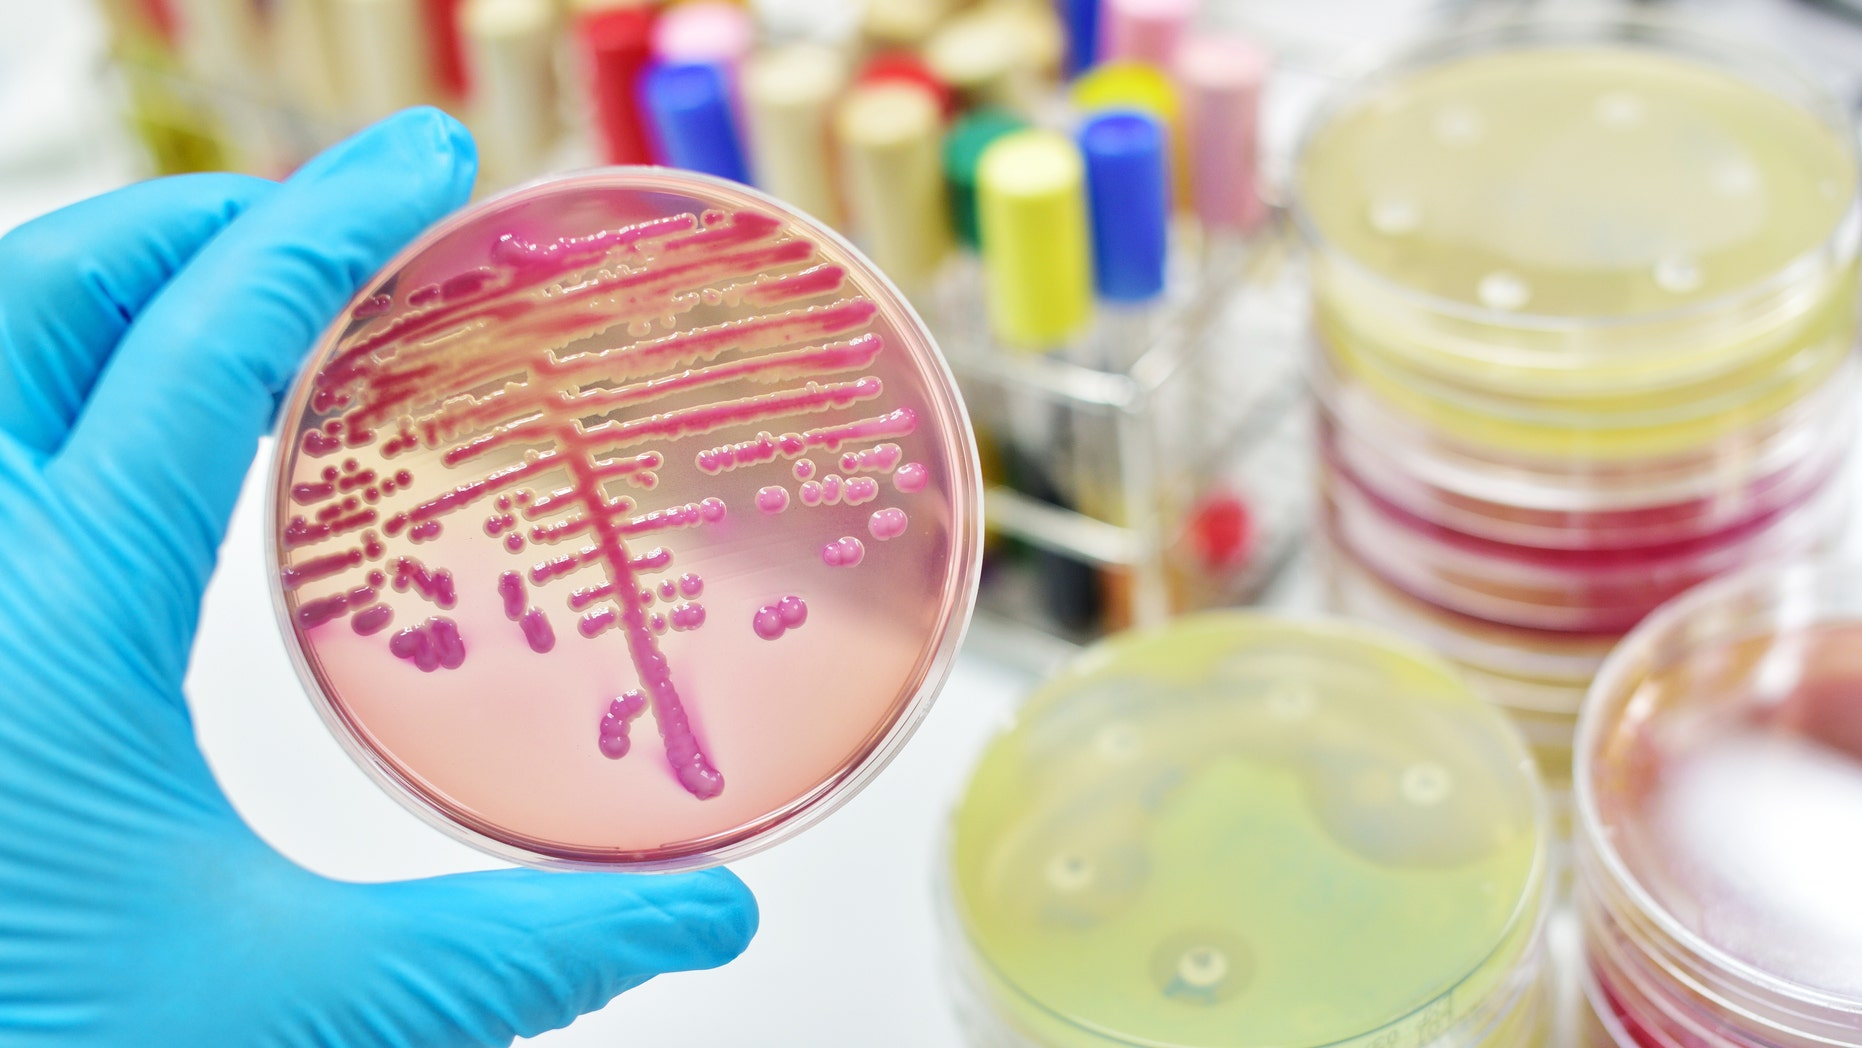 The fungus, calledCandida auris, is a yeast that normally lives harmlessly on the skin and mucous membranes.